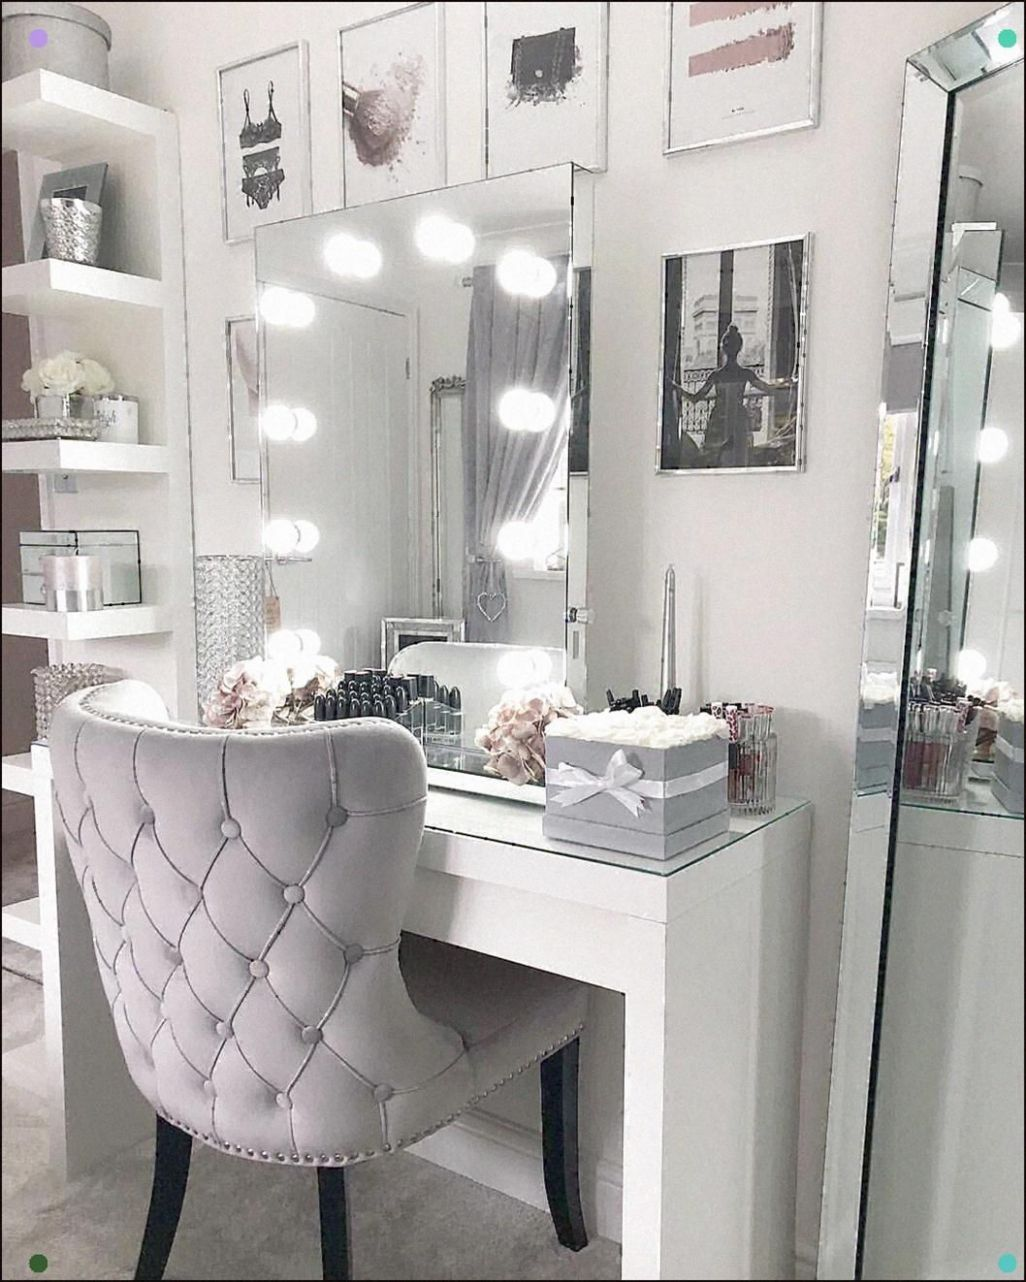 Dressing room goals from @no12_home_renovation featuring our Diaz ..